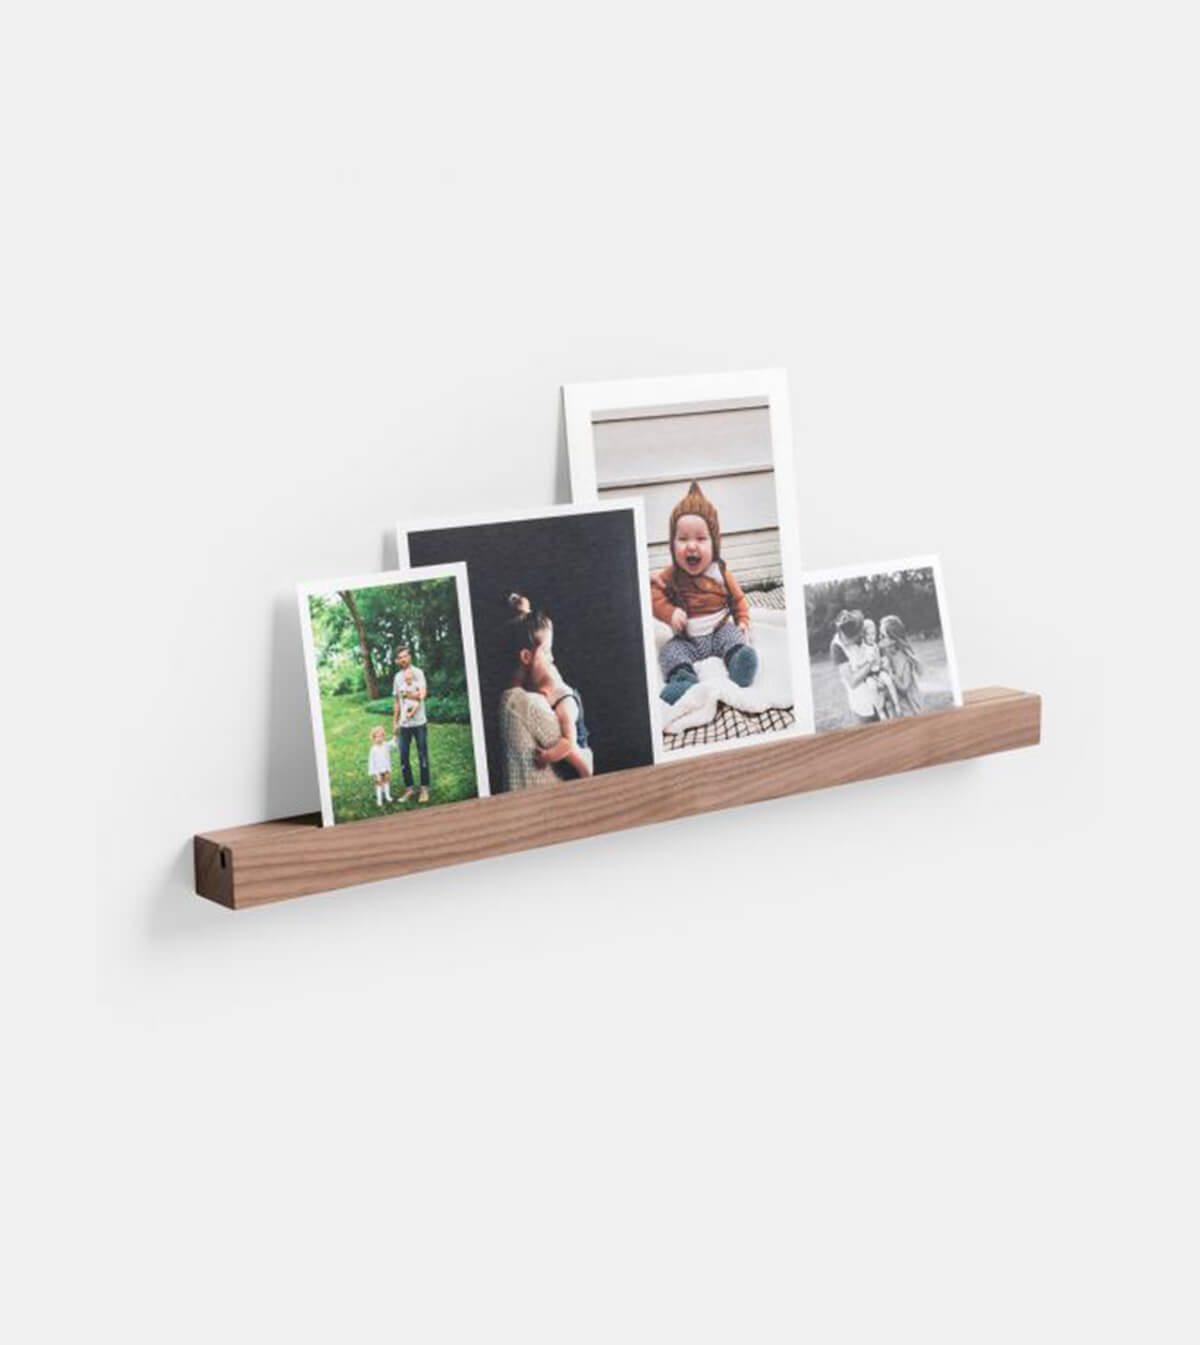 Wooden Photo Ledge holding prints